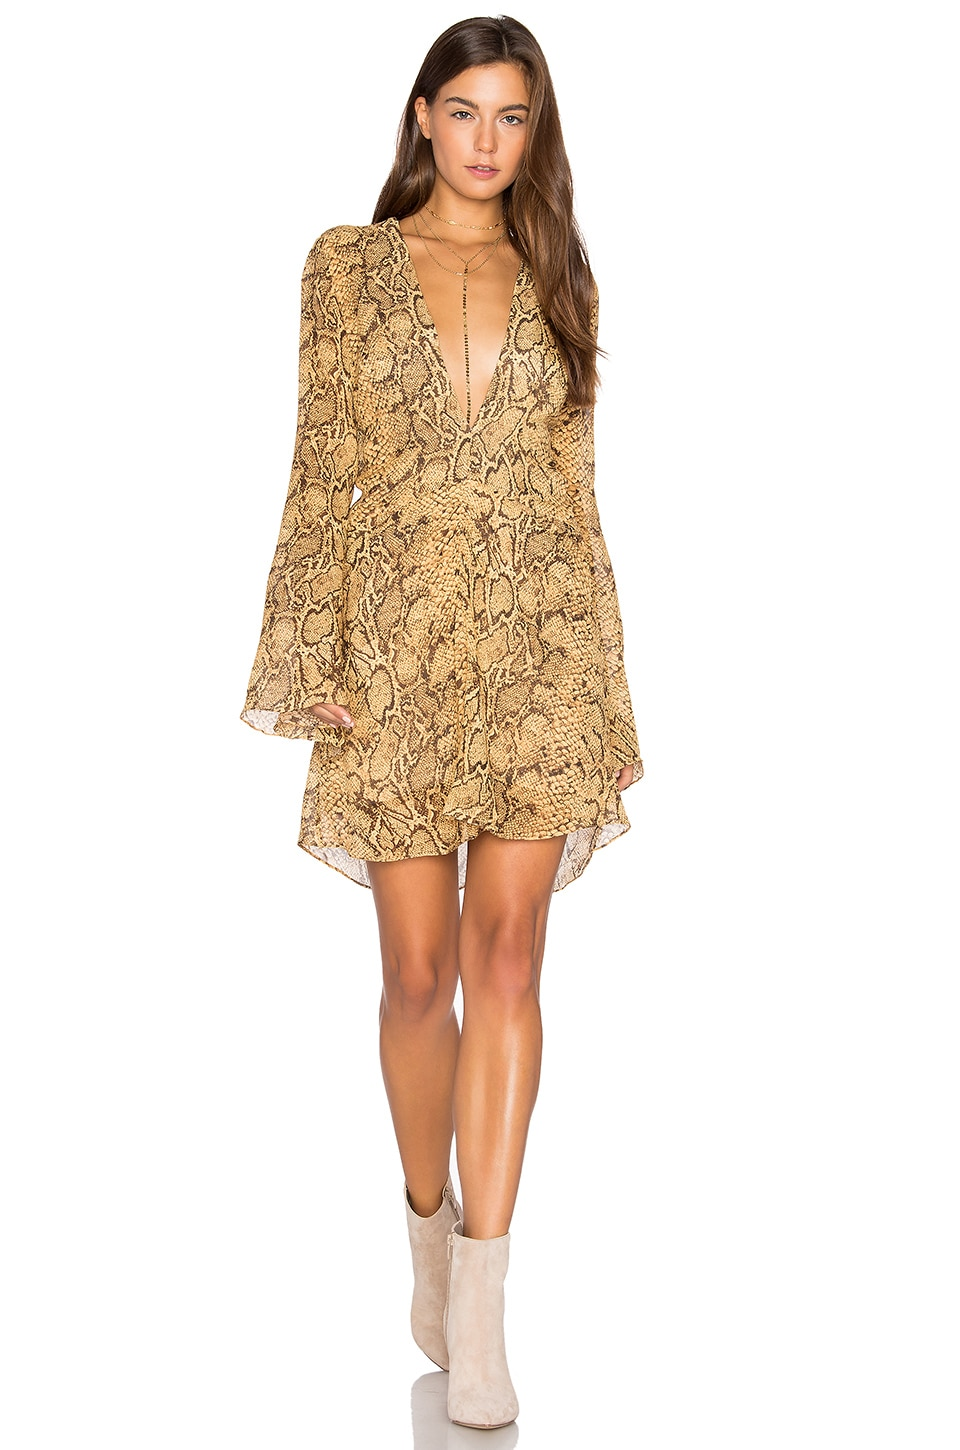 ANIMALE Deep V Dress in Gold Snake